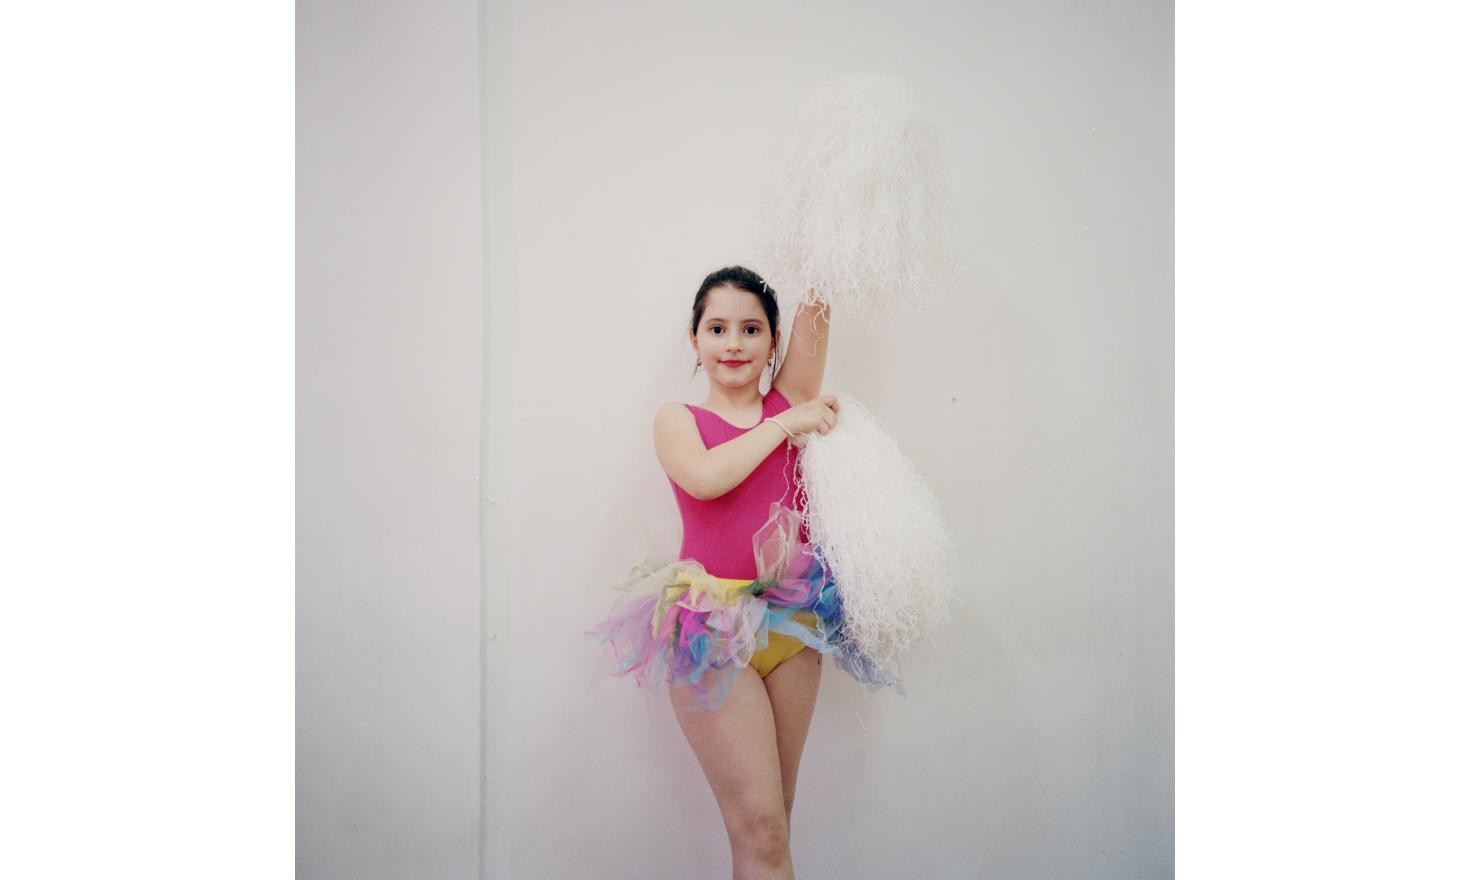 A cheerleader at Jean Bart highschool in Sulina. Jean Bart is the pseudonym of the Romanian writer Eugeniu Botez. He wrote the novel Europolis, which tells the heyday of Sulina.